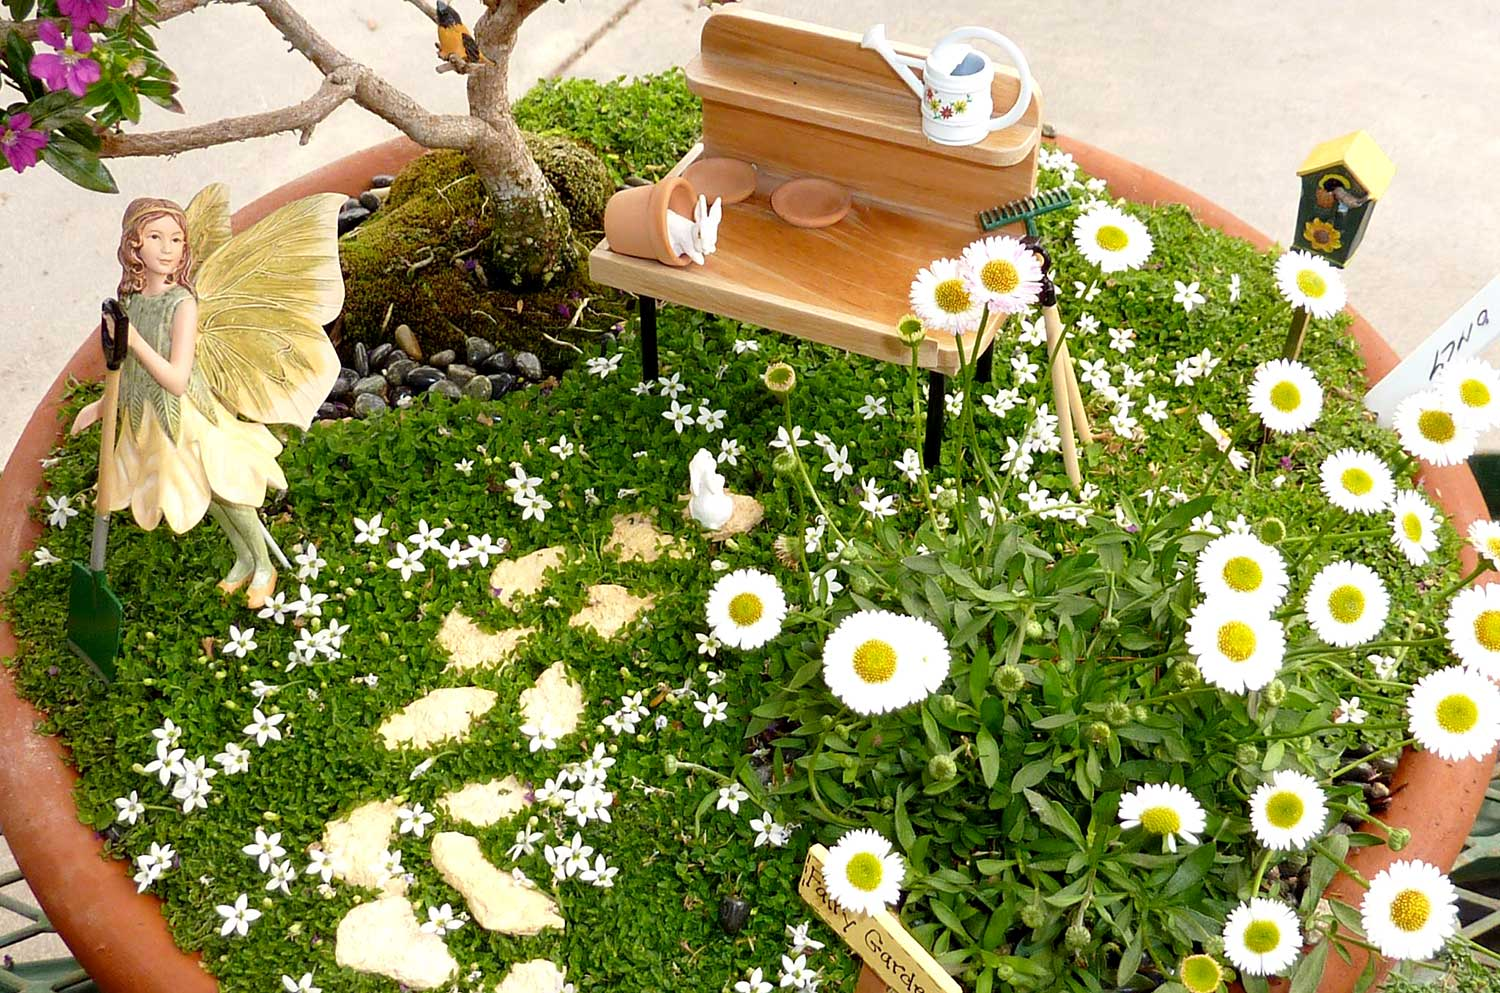 Ideas For Fairy Gardens ad diy ideas how to make fairy garden Fairy Garden Fairygardenplants